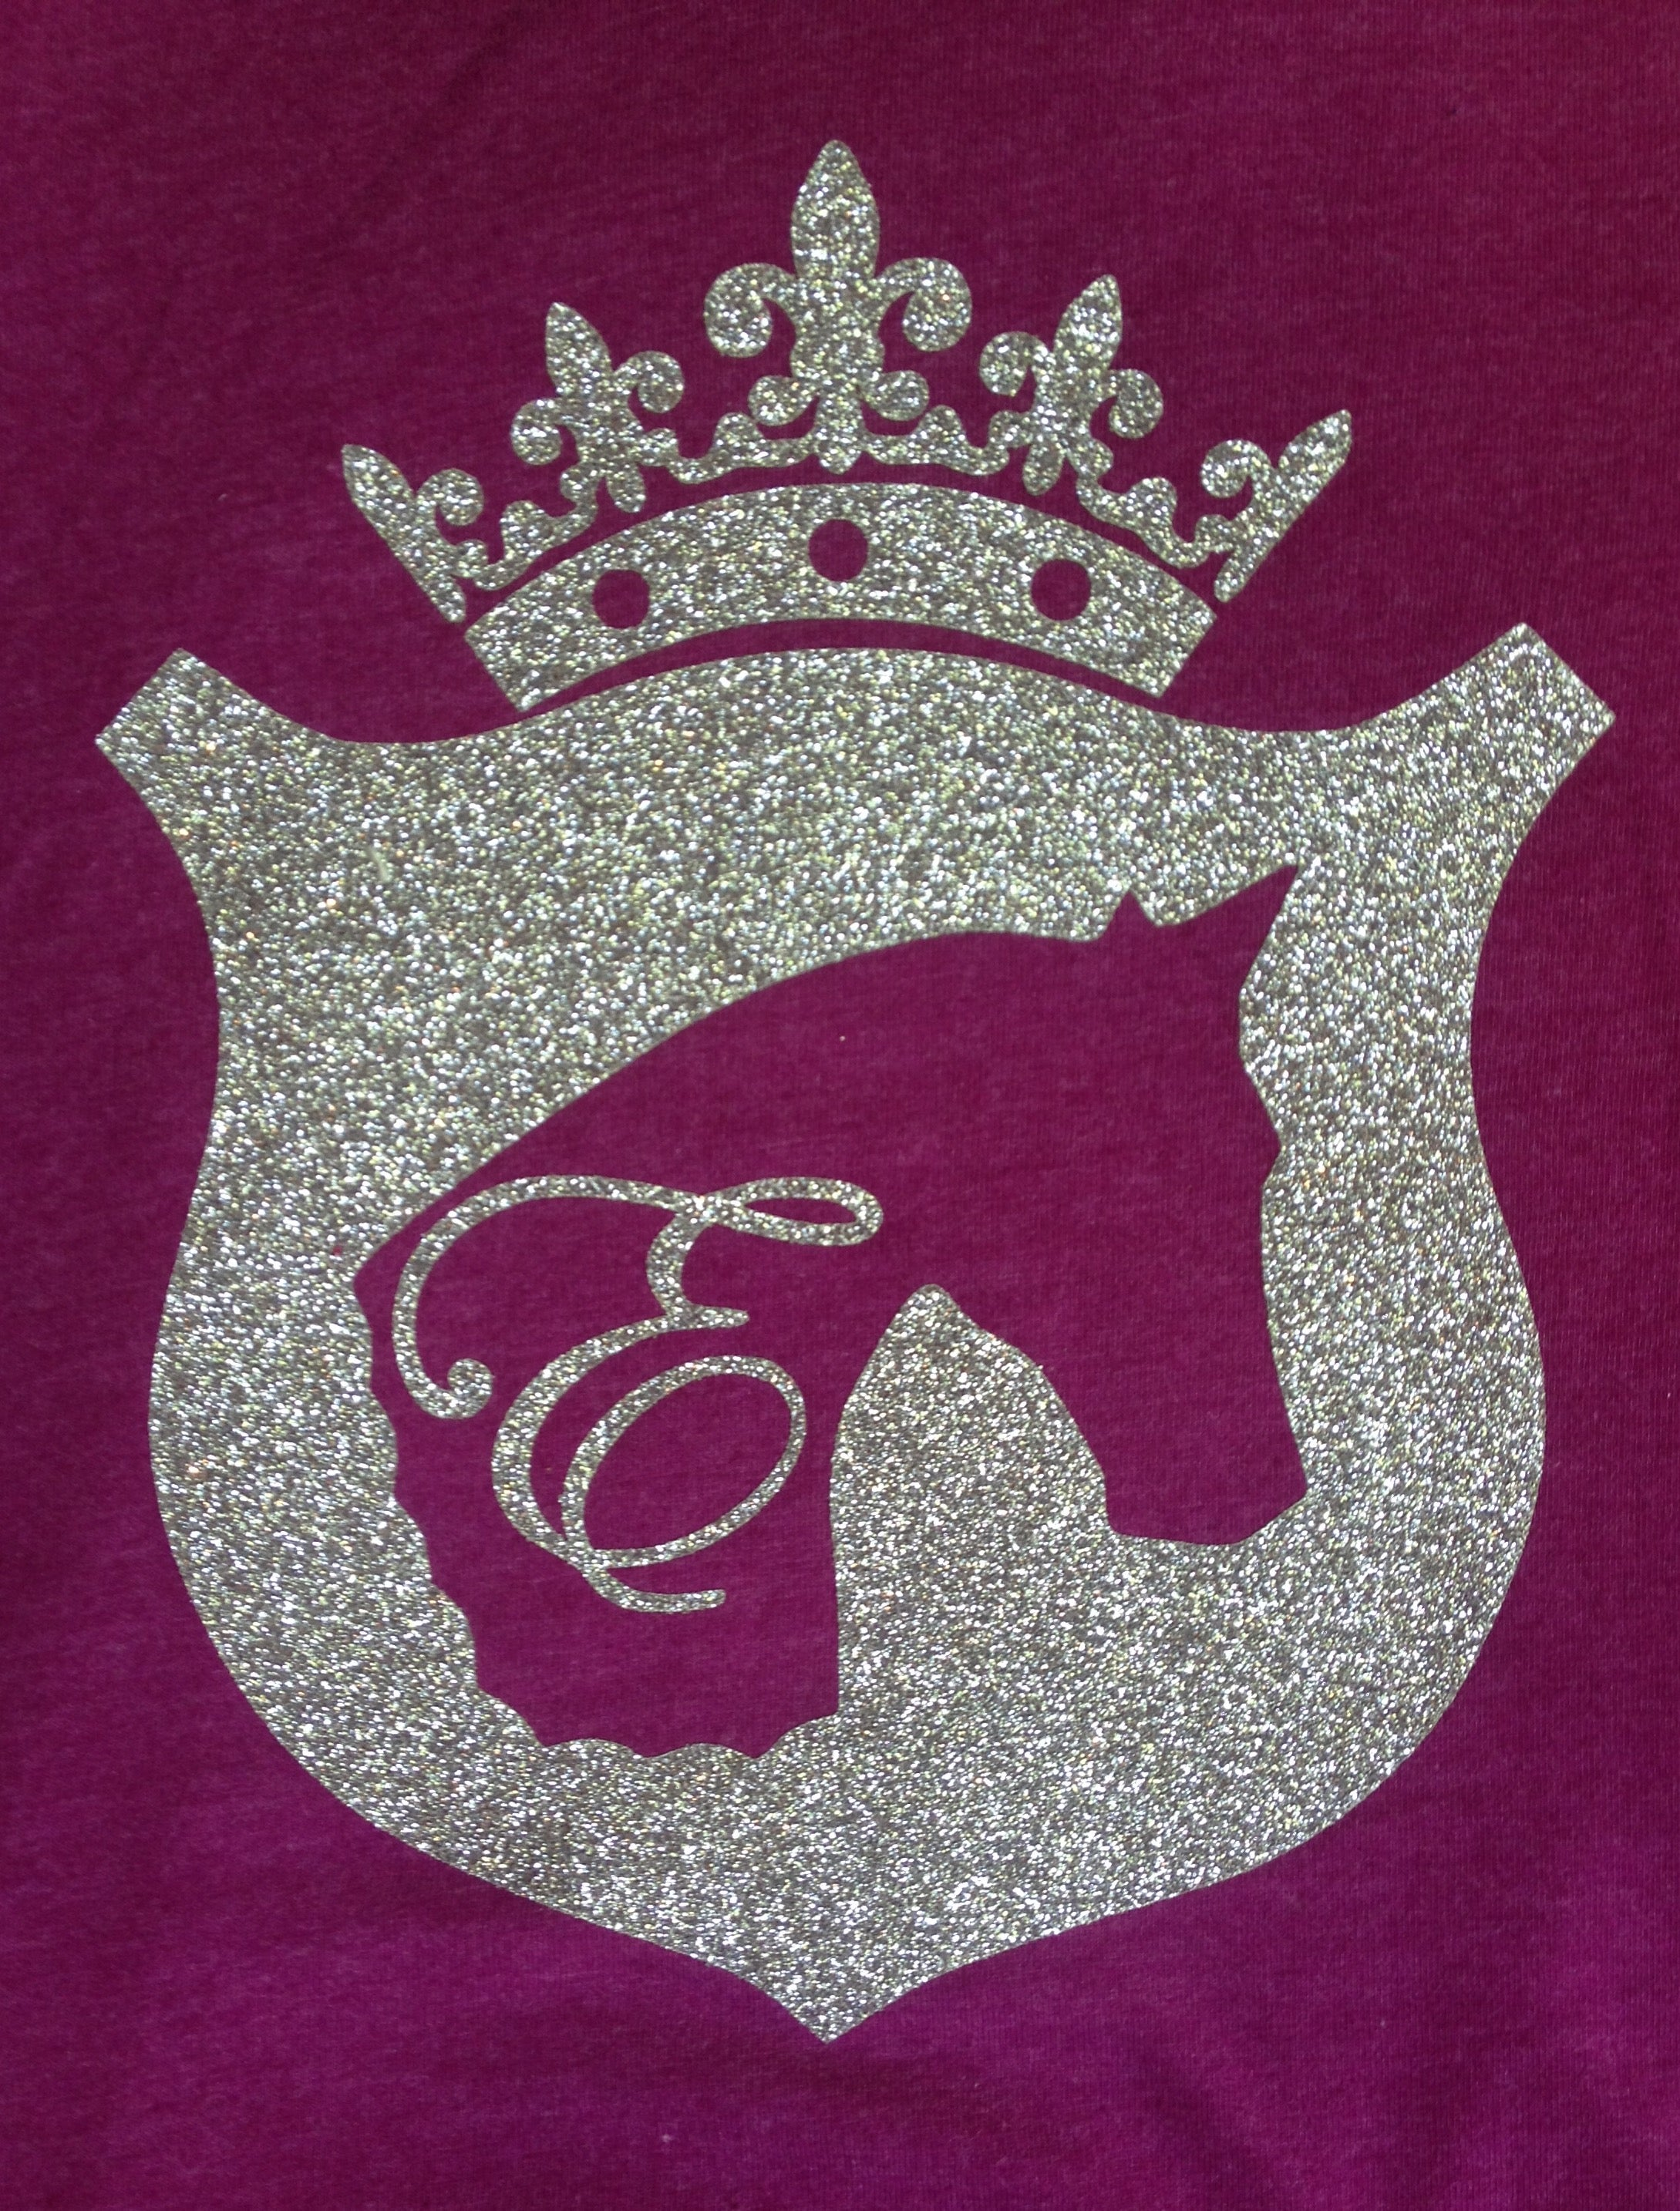 Equestrianista Glitter Logo T-Shirt in Sangria by Equestrianista.